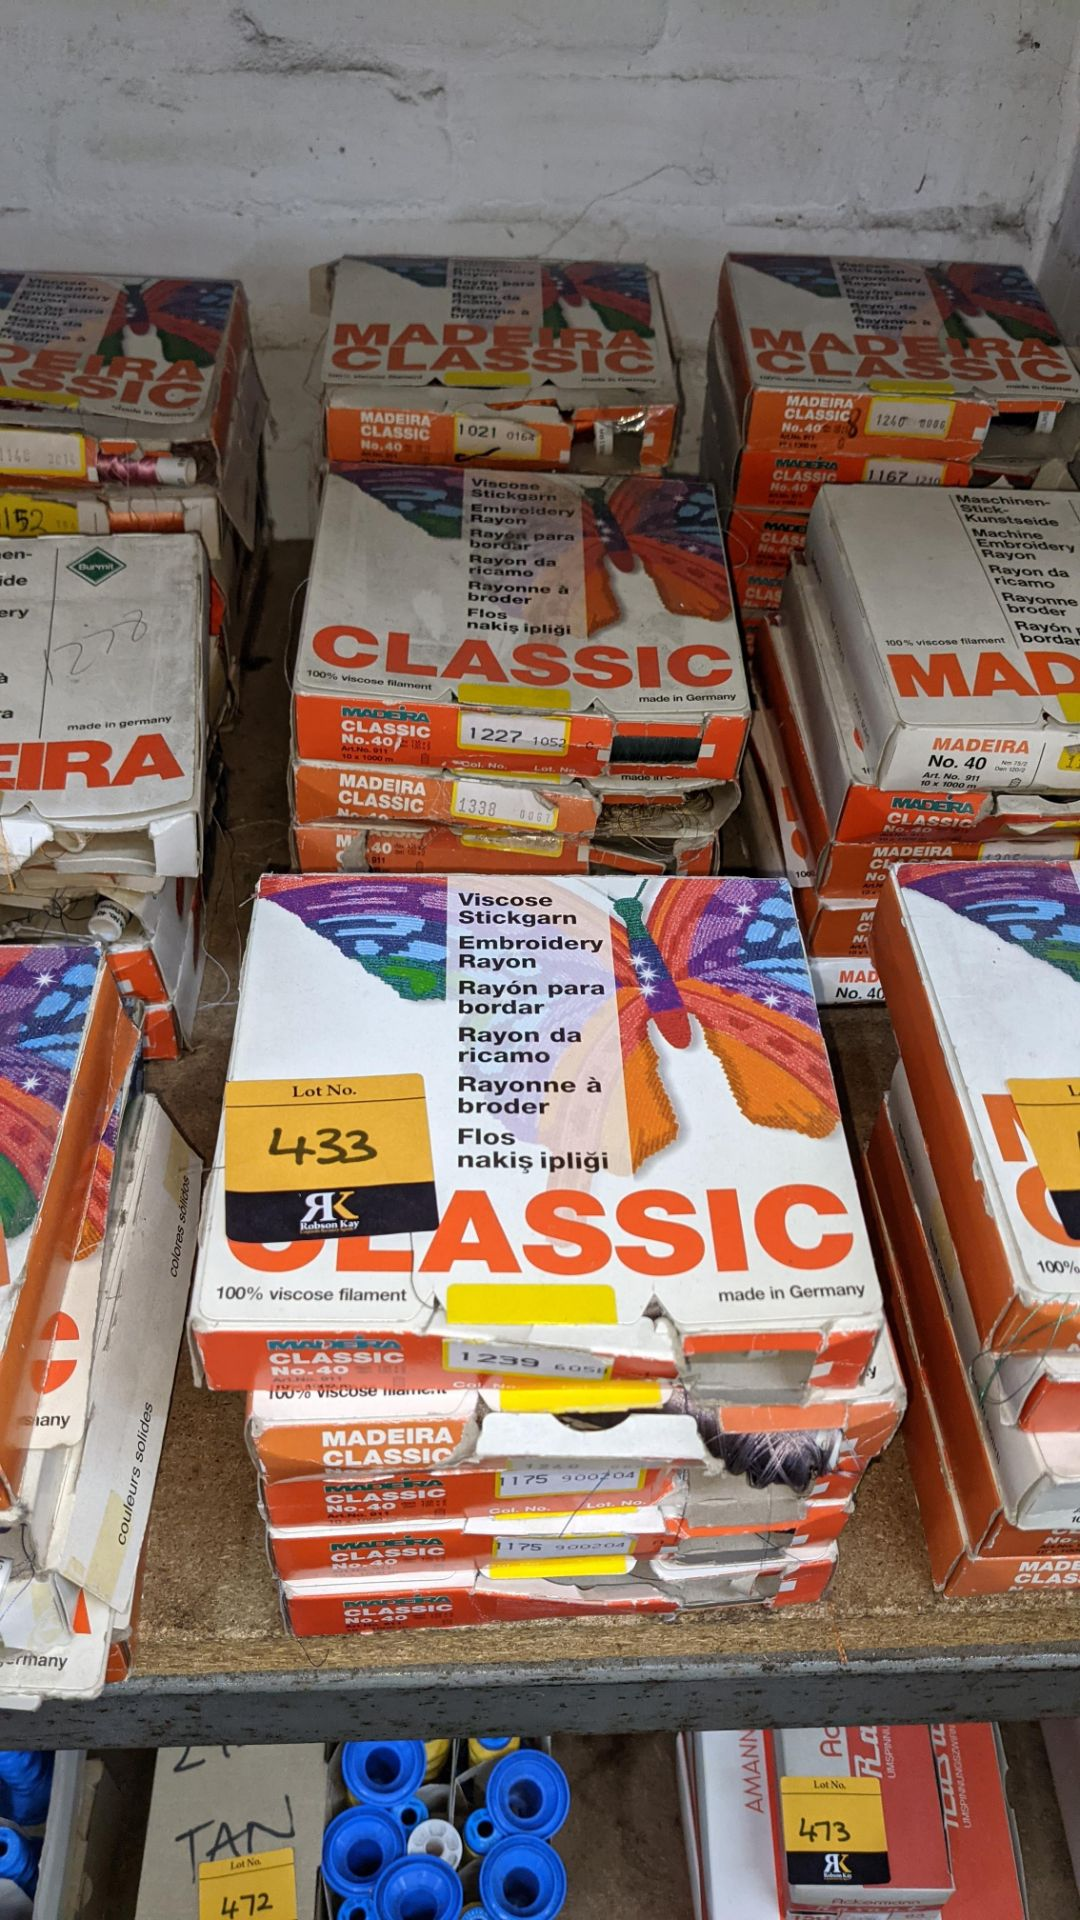 15 assorted boxes of Madeira Classic No. 40 embroidery rayon thread - Image 2 of 8